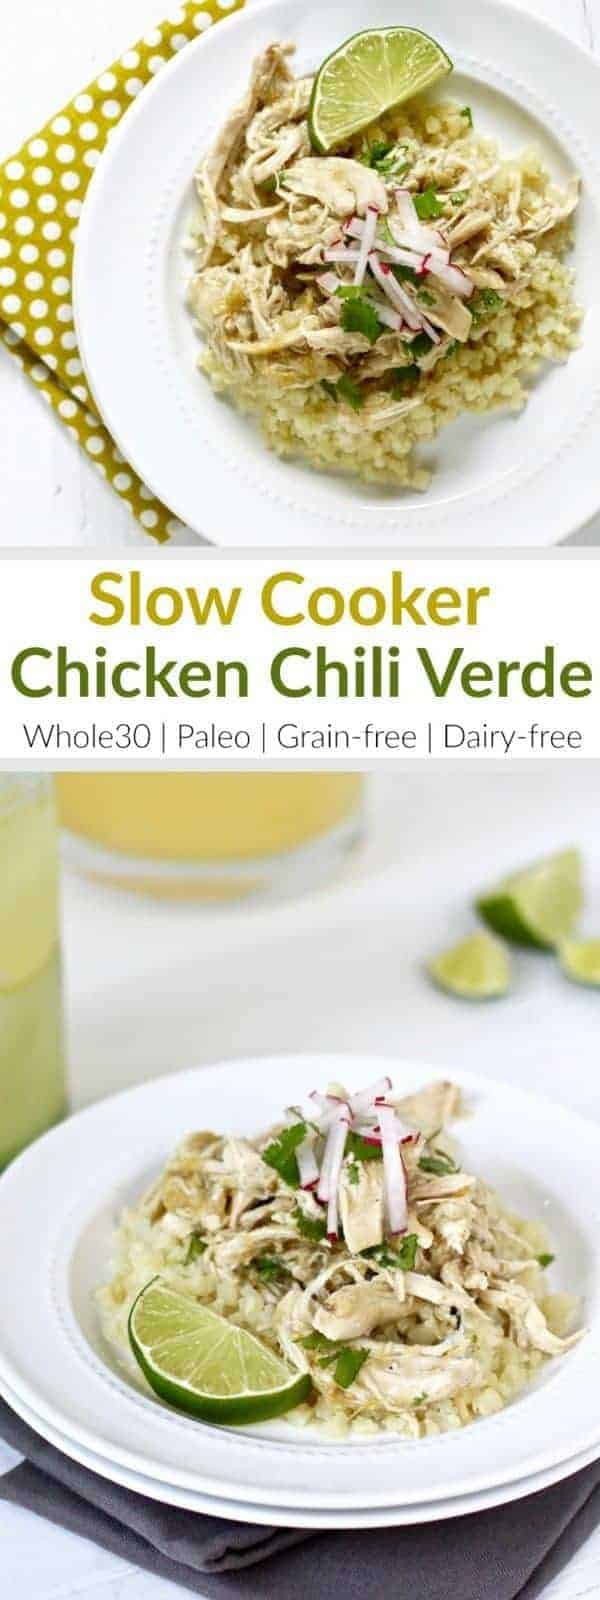 Slow Cooker Chicken Chile Verde!!!!!